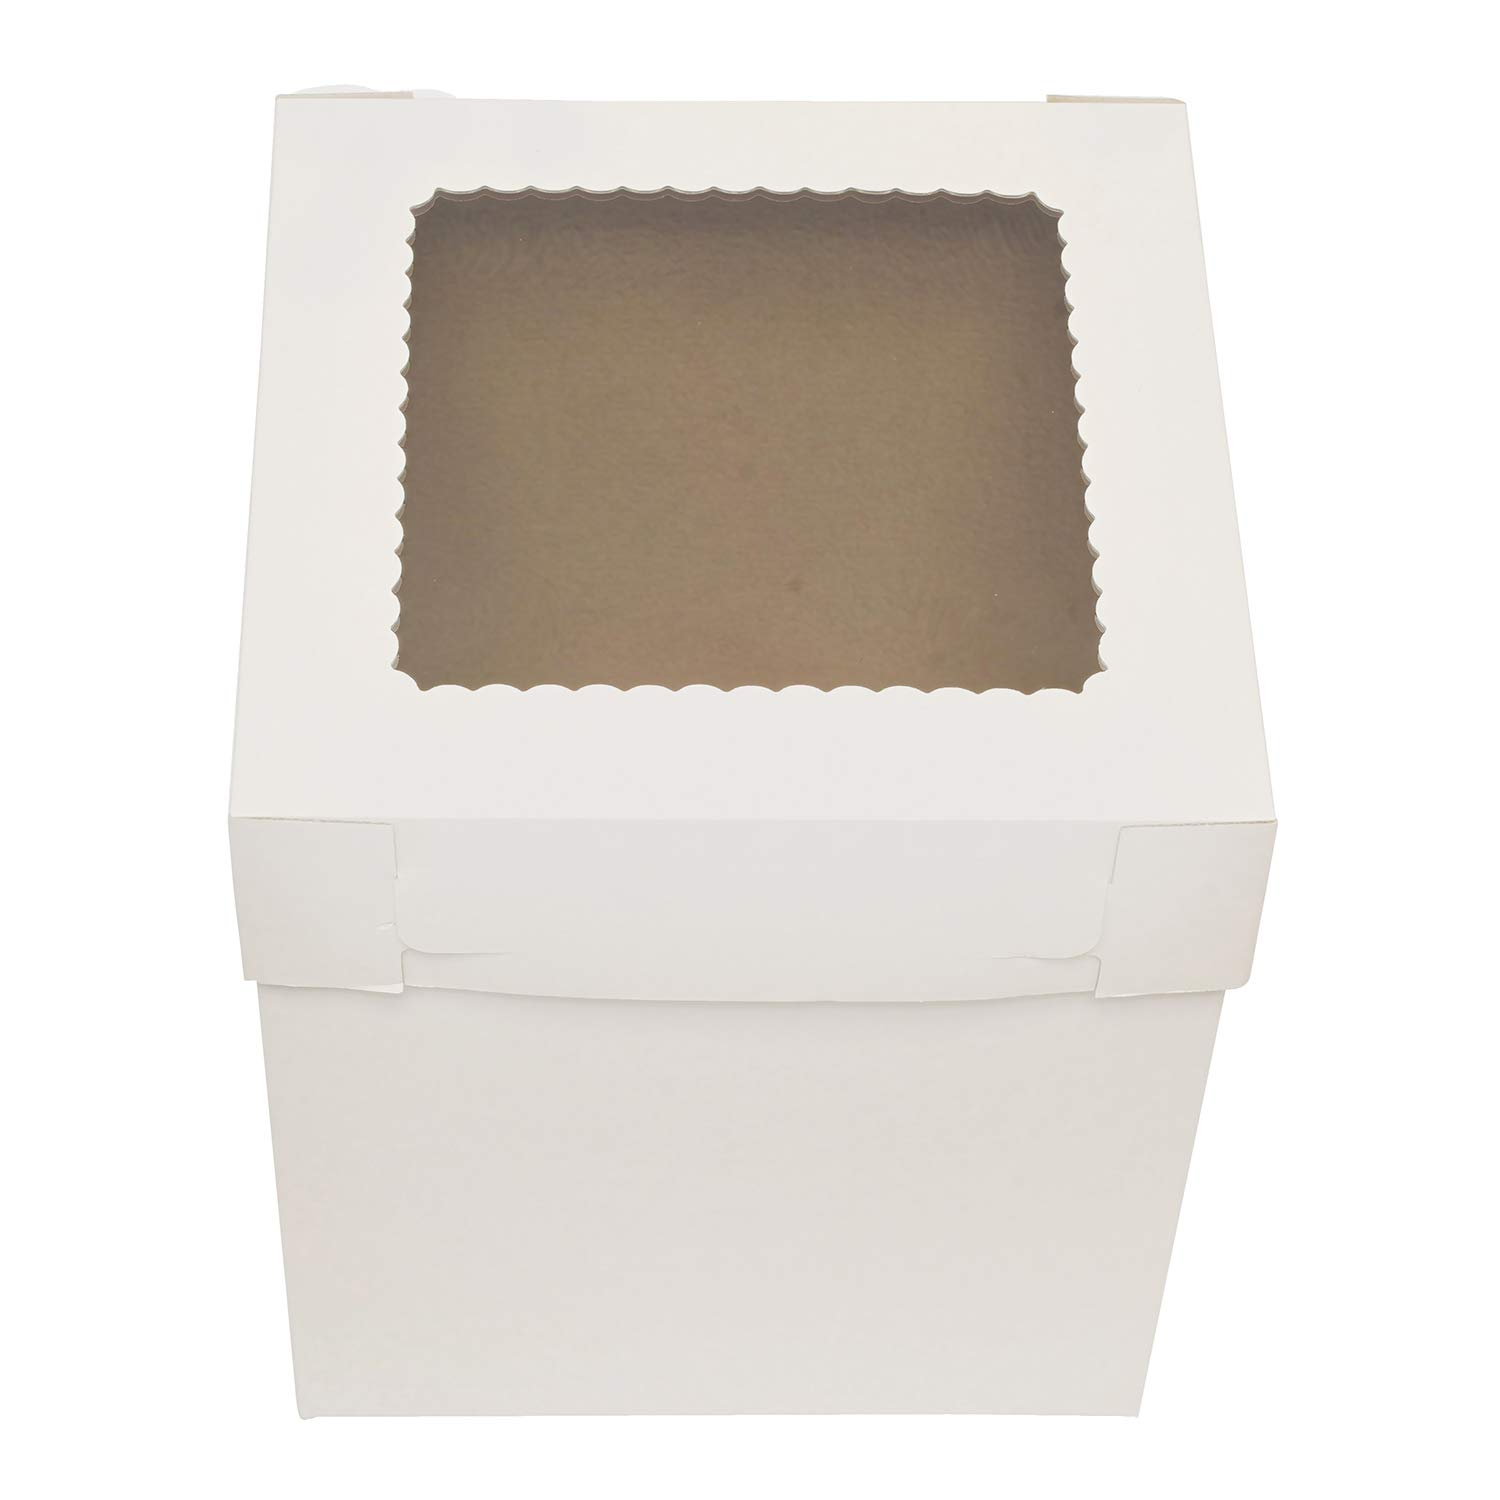 SpecialT Cake Boxes with Window 25pk 12'' x 12'' x 8'' Inch White Bakery Boxes, Disposable Cake Containers, Dessert Boxes by SpecialT (Image #5)